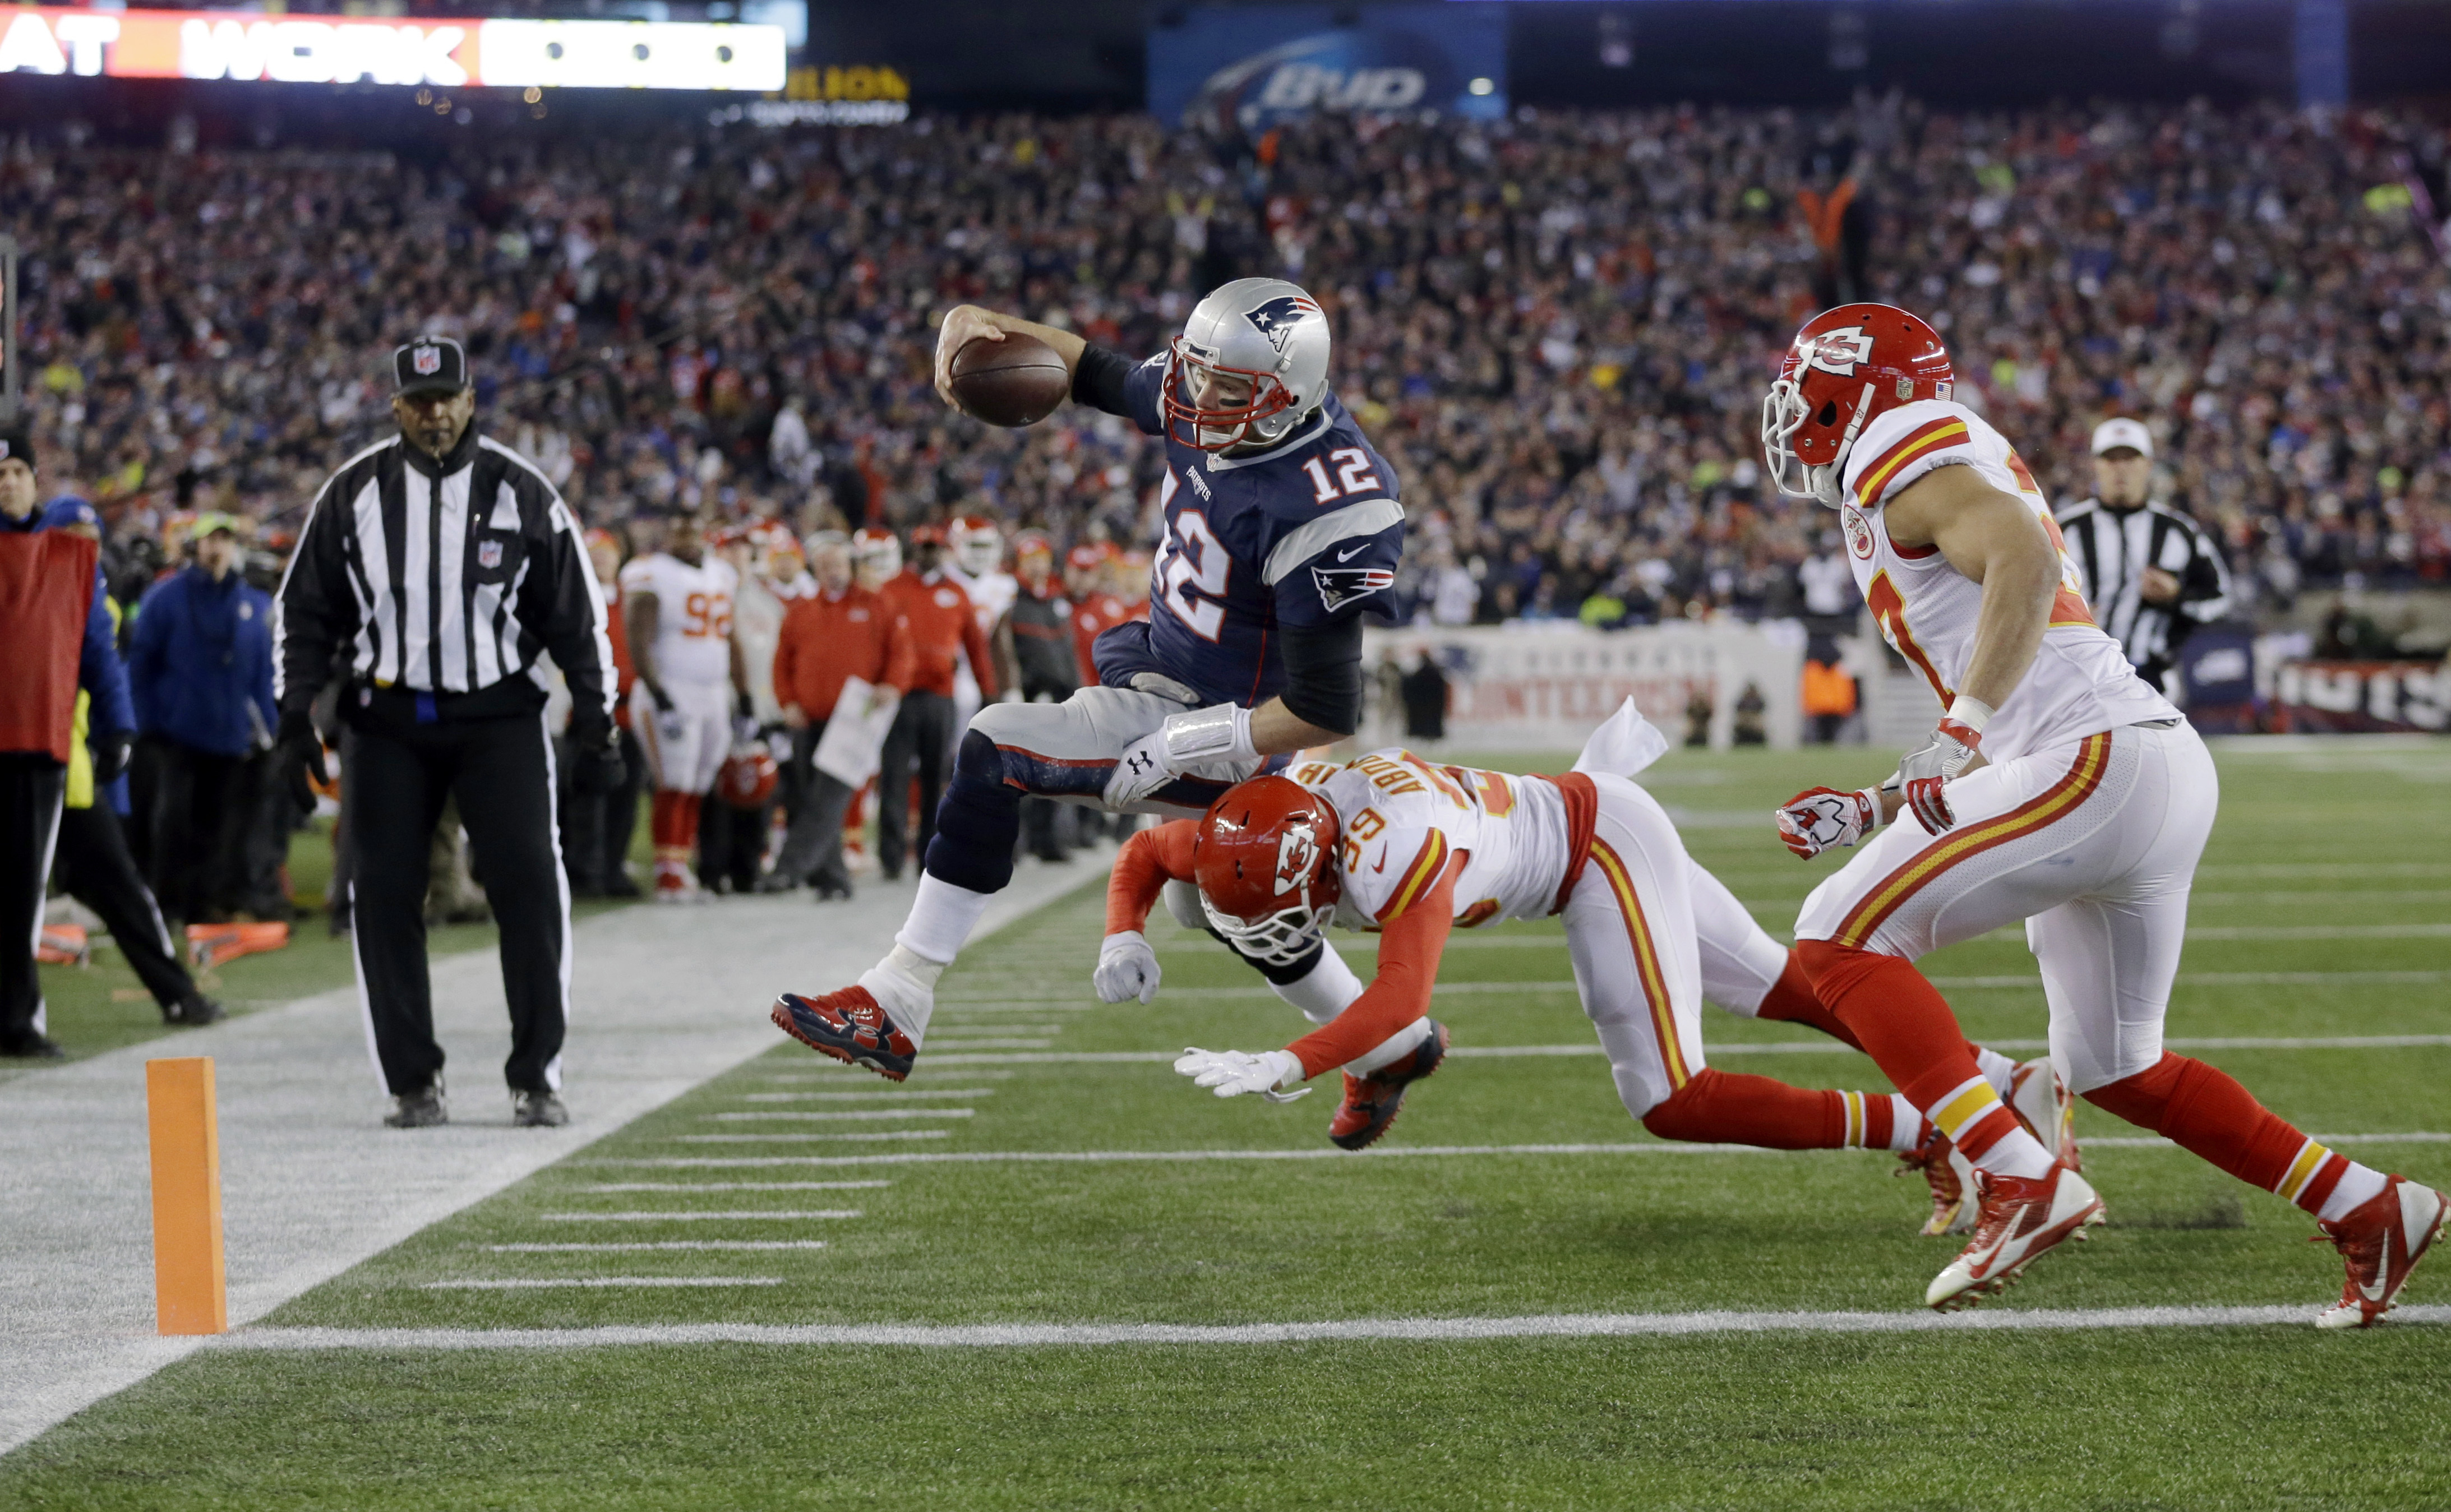 New England Patriots and the Kansas City Chiefs are shown in action in this Jan. 16, 2016, file photo. The two teams will kick off the 2017 NFL season when they go head to head on Sept. 7. (AP Photo/Steven Senne)